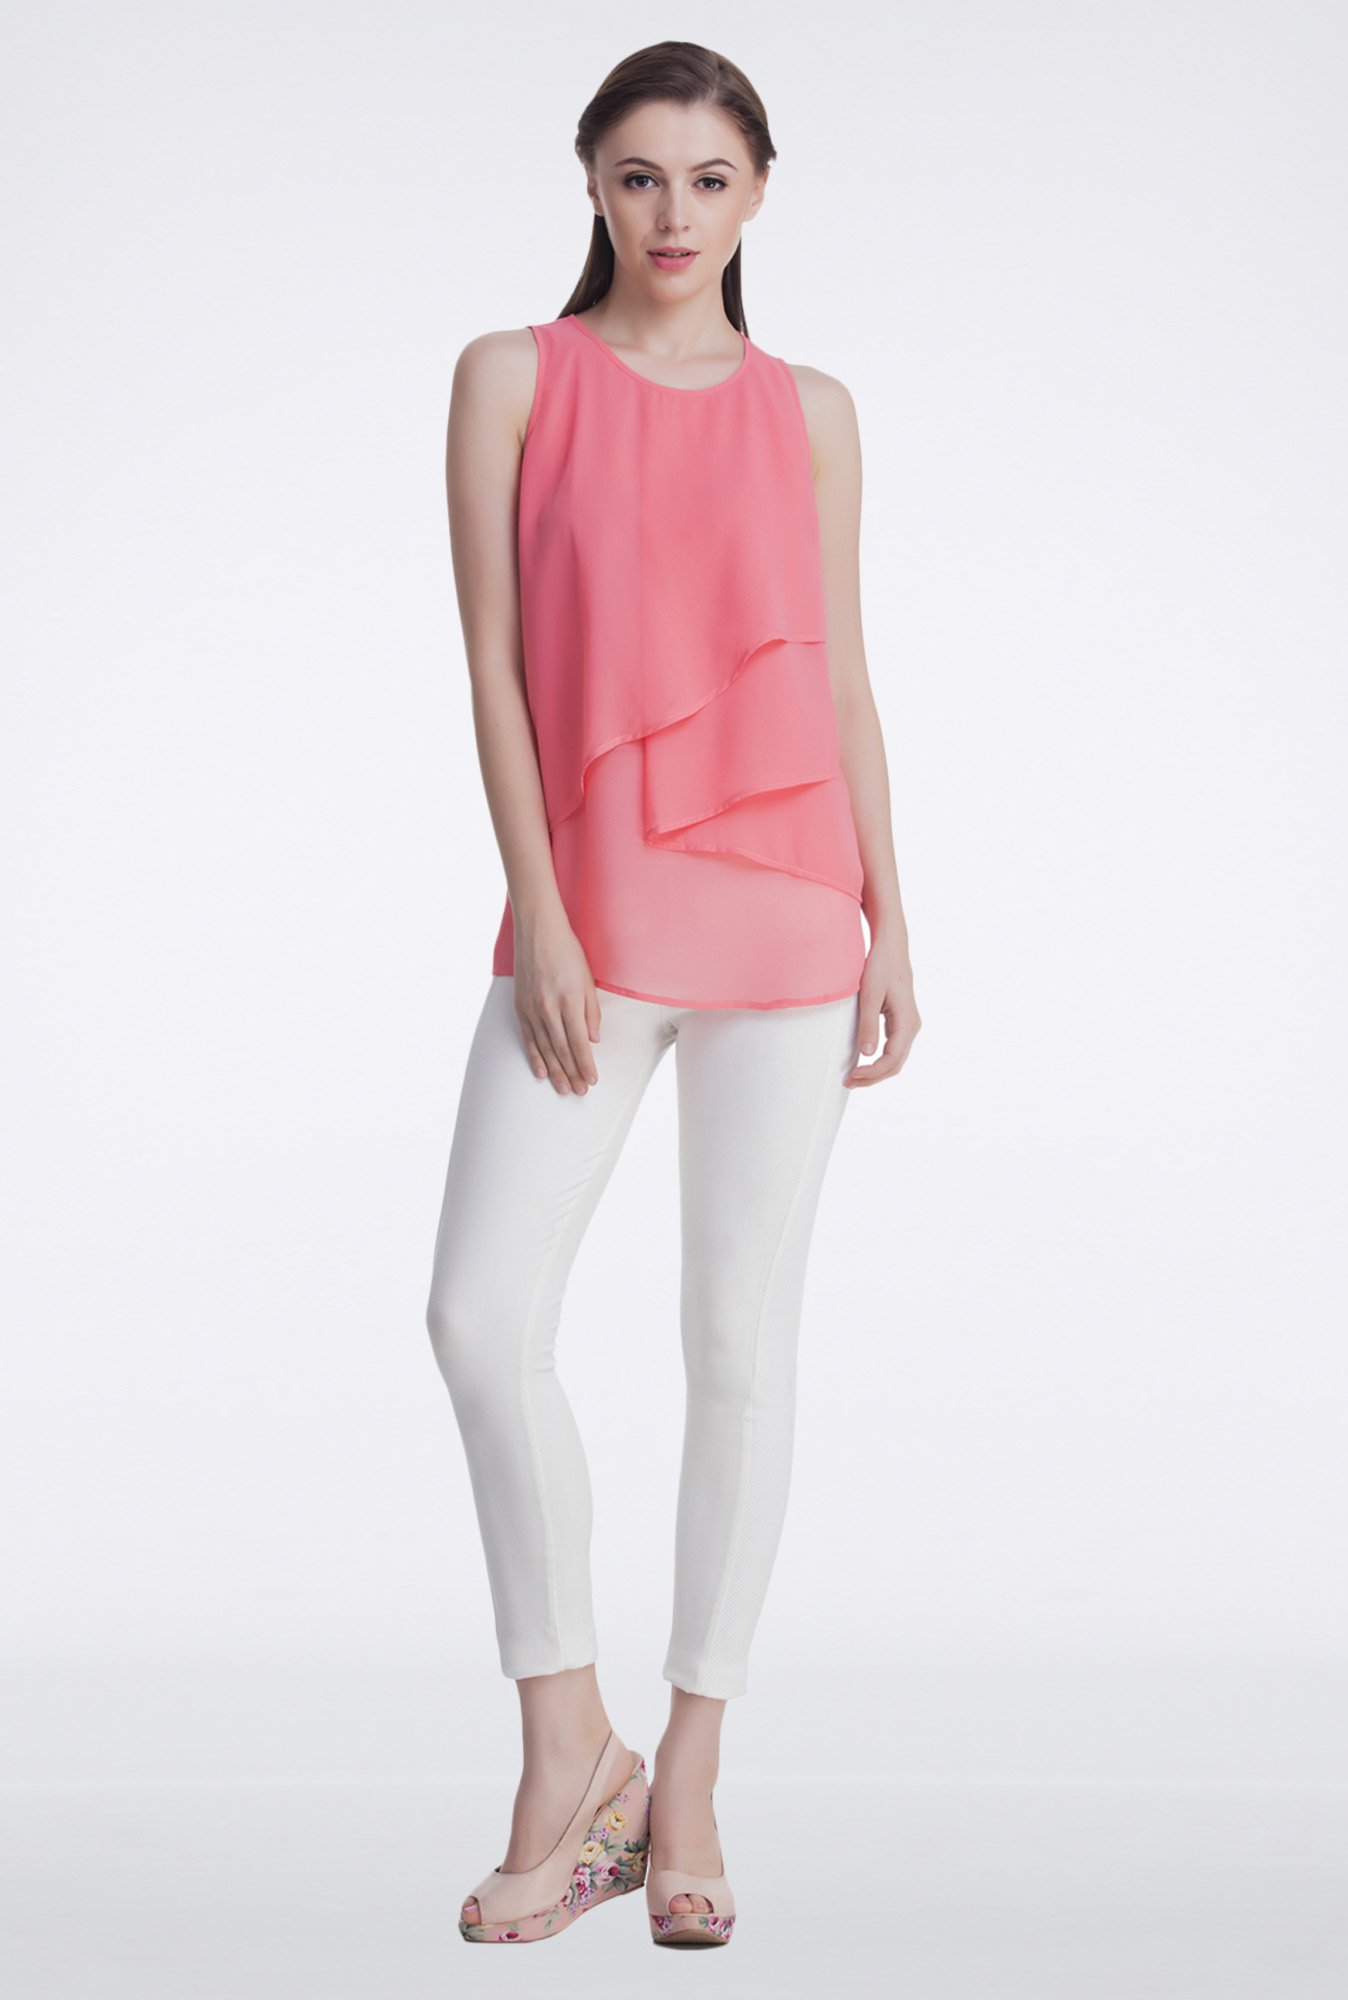 Femella Pink Sleeveless Tier Top